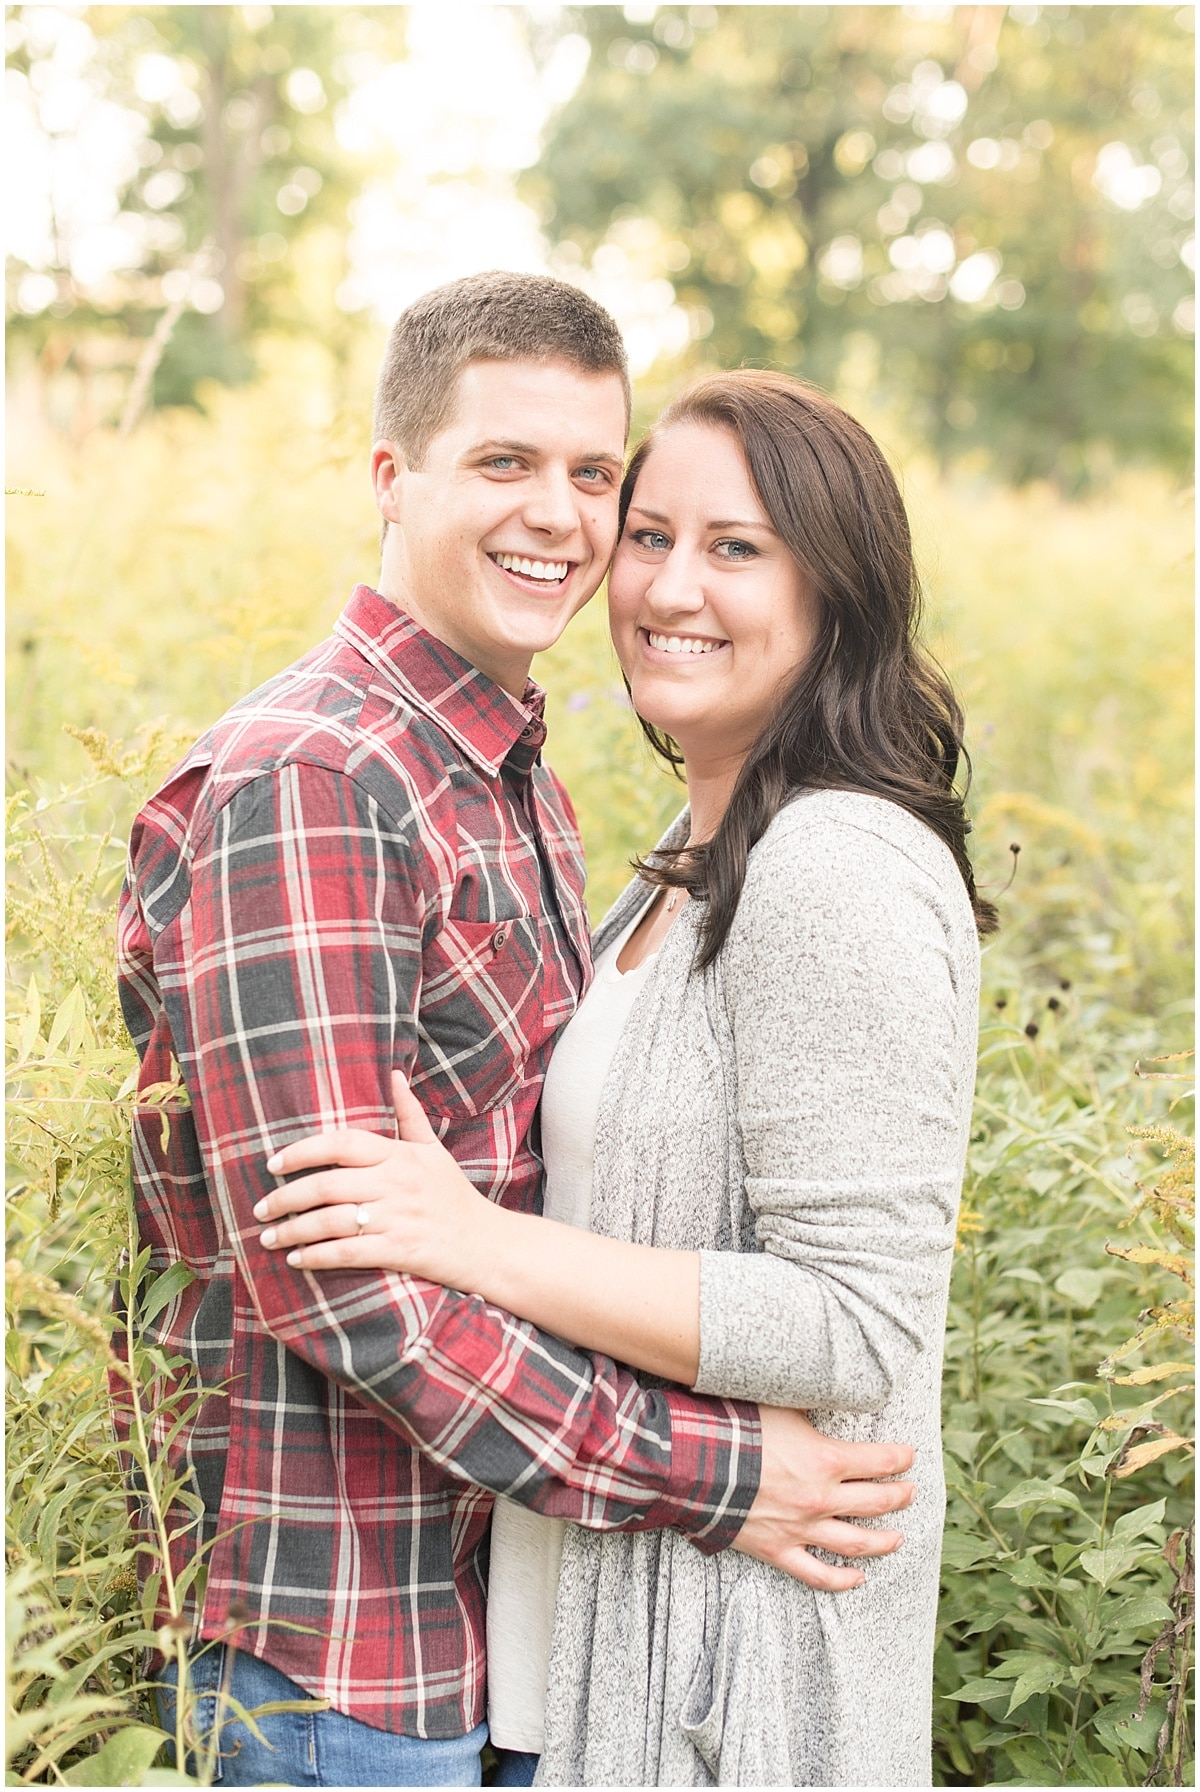 Isaac and Adrienne/ Engagement Photos at Holliday Park in Indianapolis3.jpg